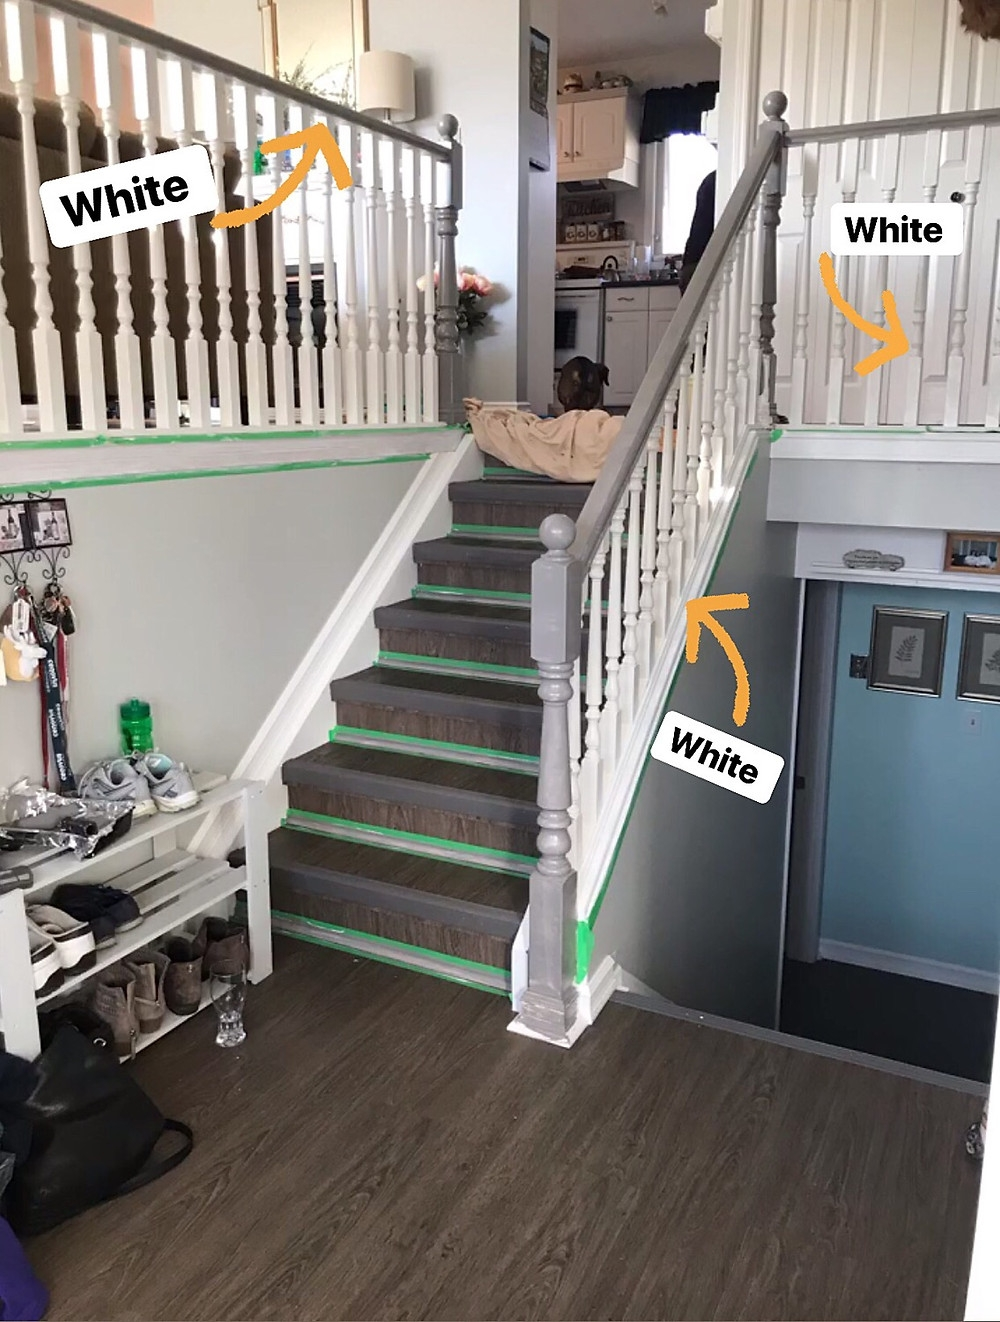 How To Paint Stair Spindles The Easy Way | Grey Banister White Spindles | Silver | Indoor | Pewter | Gloss | Wrought Iron